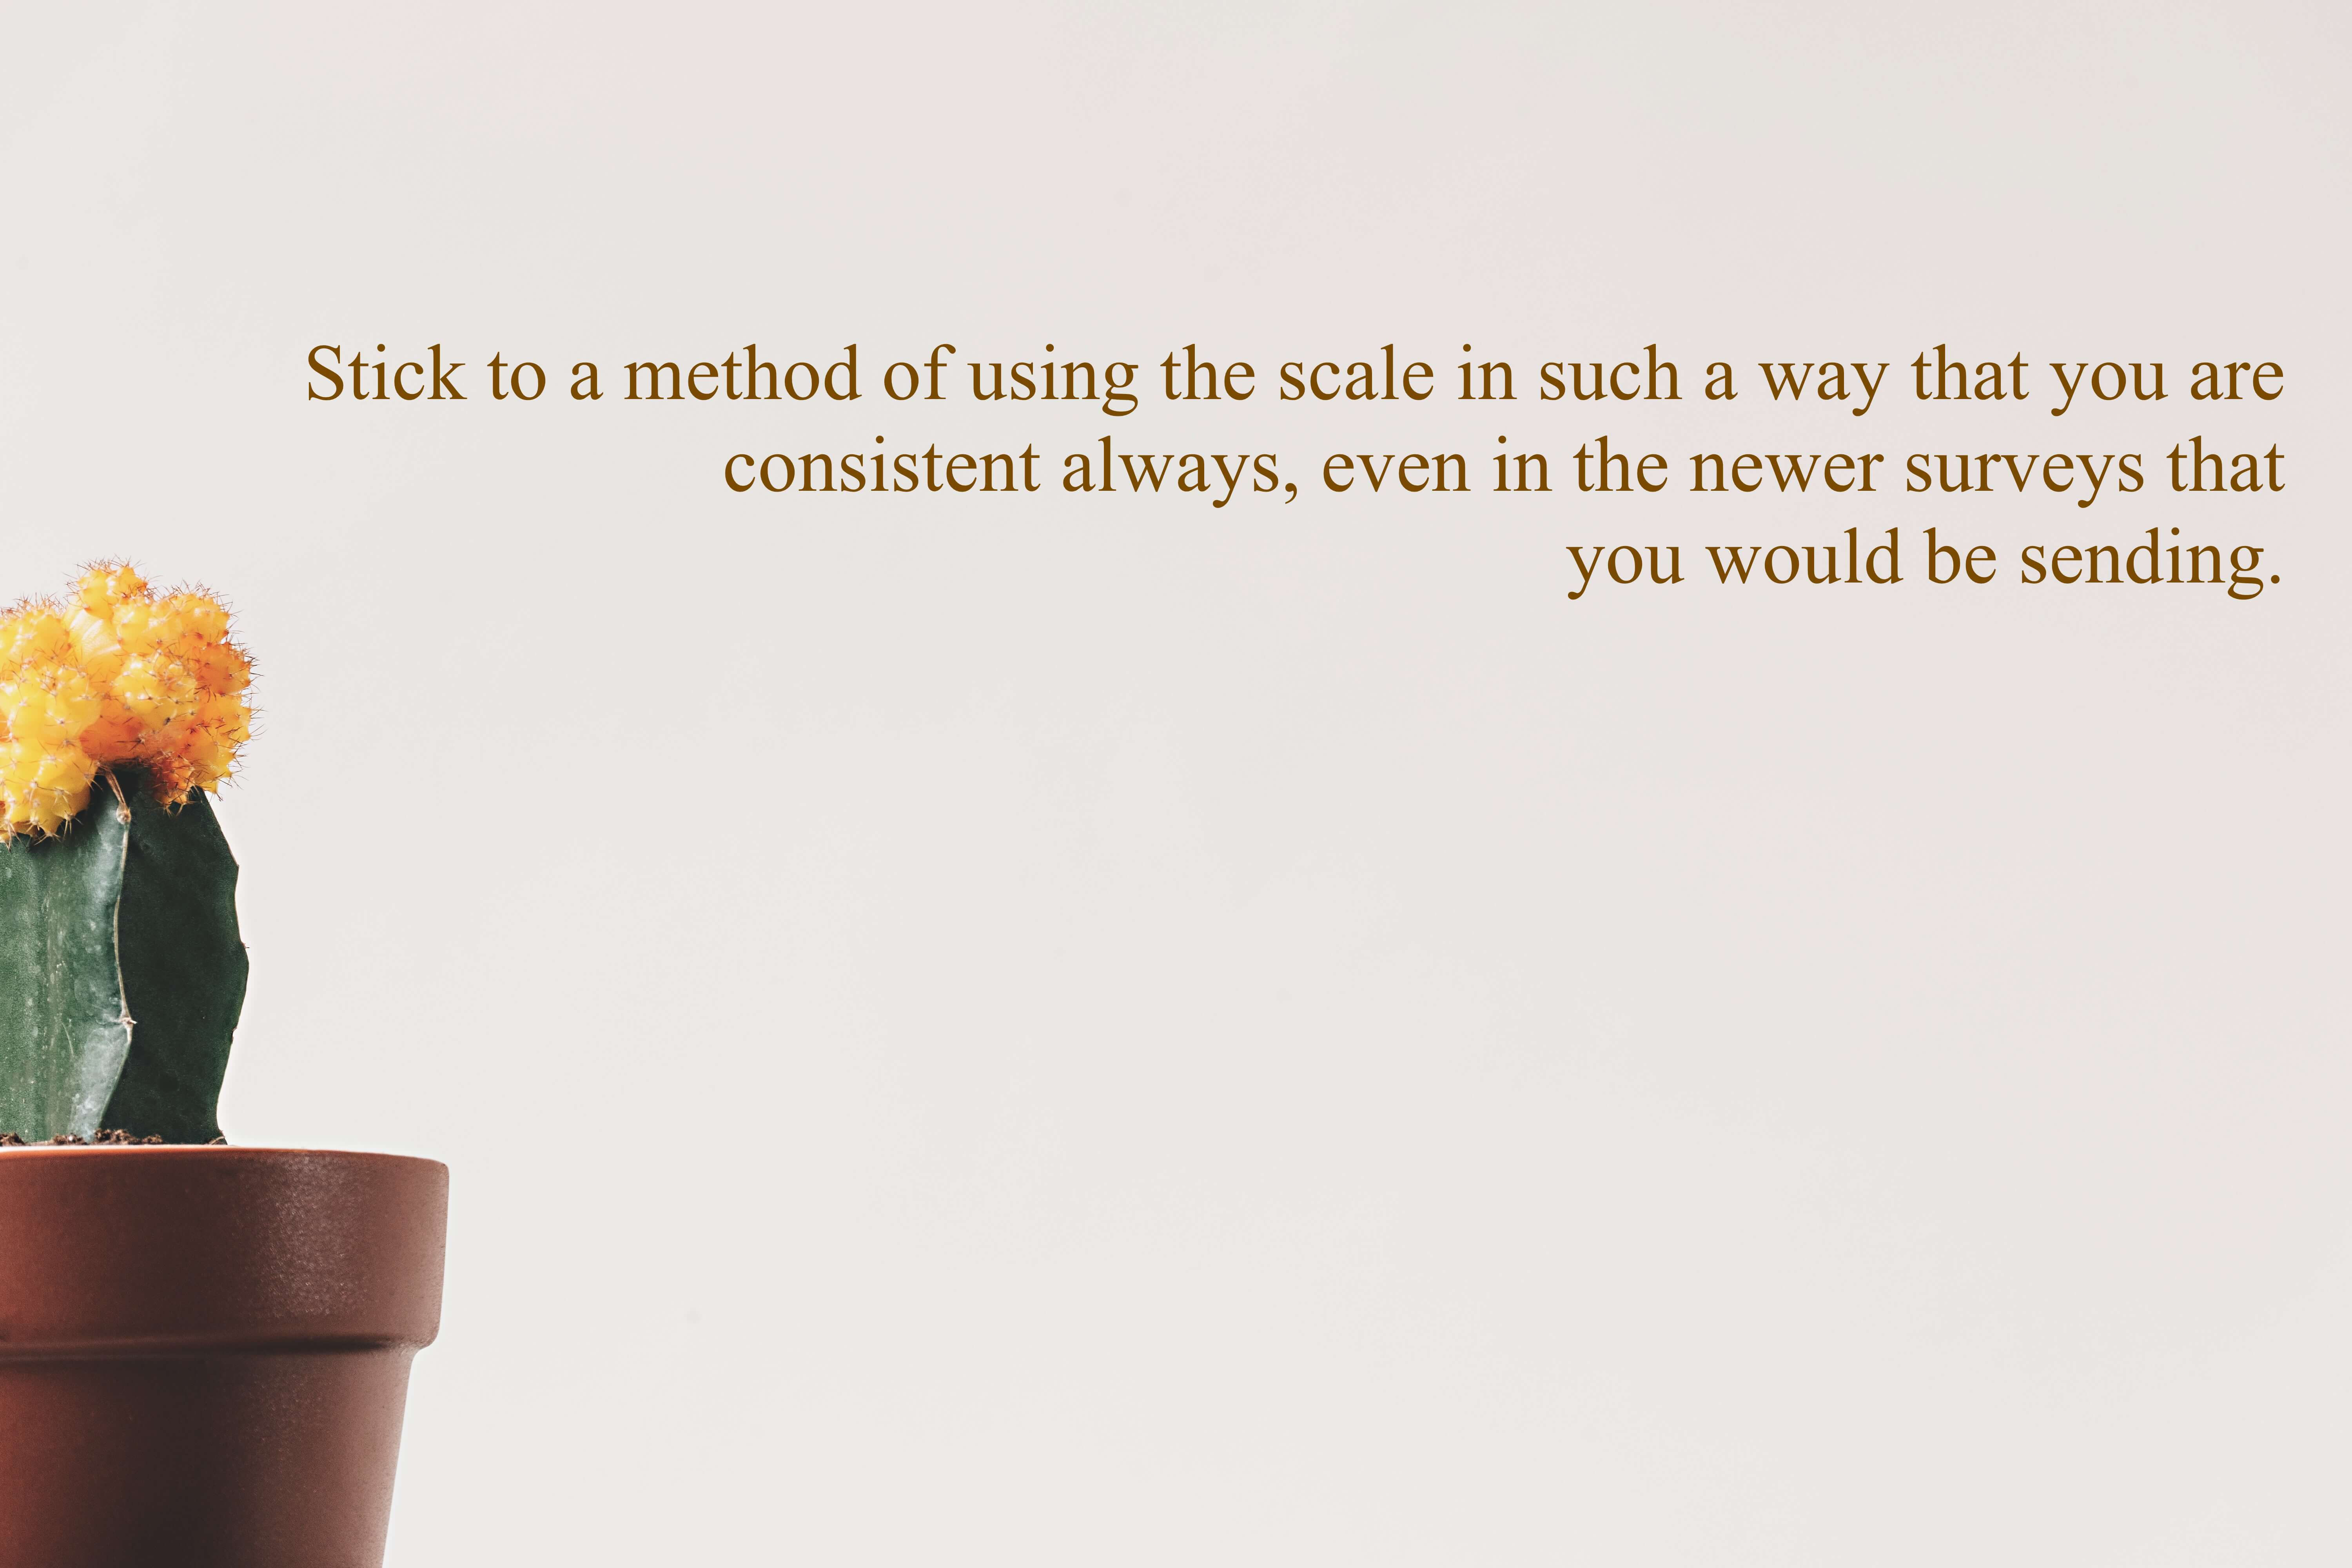 Stick to a method of using the scale in such a way that you are consistent always, even in the newer surveys that you would be sending.